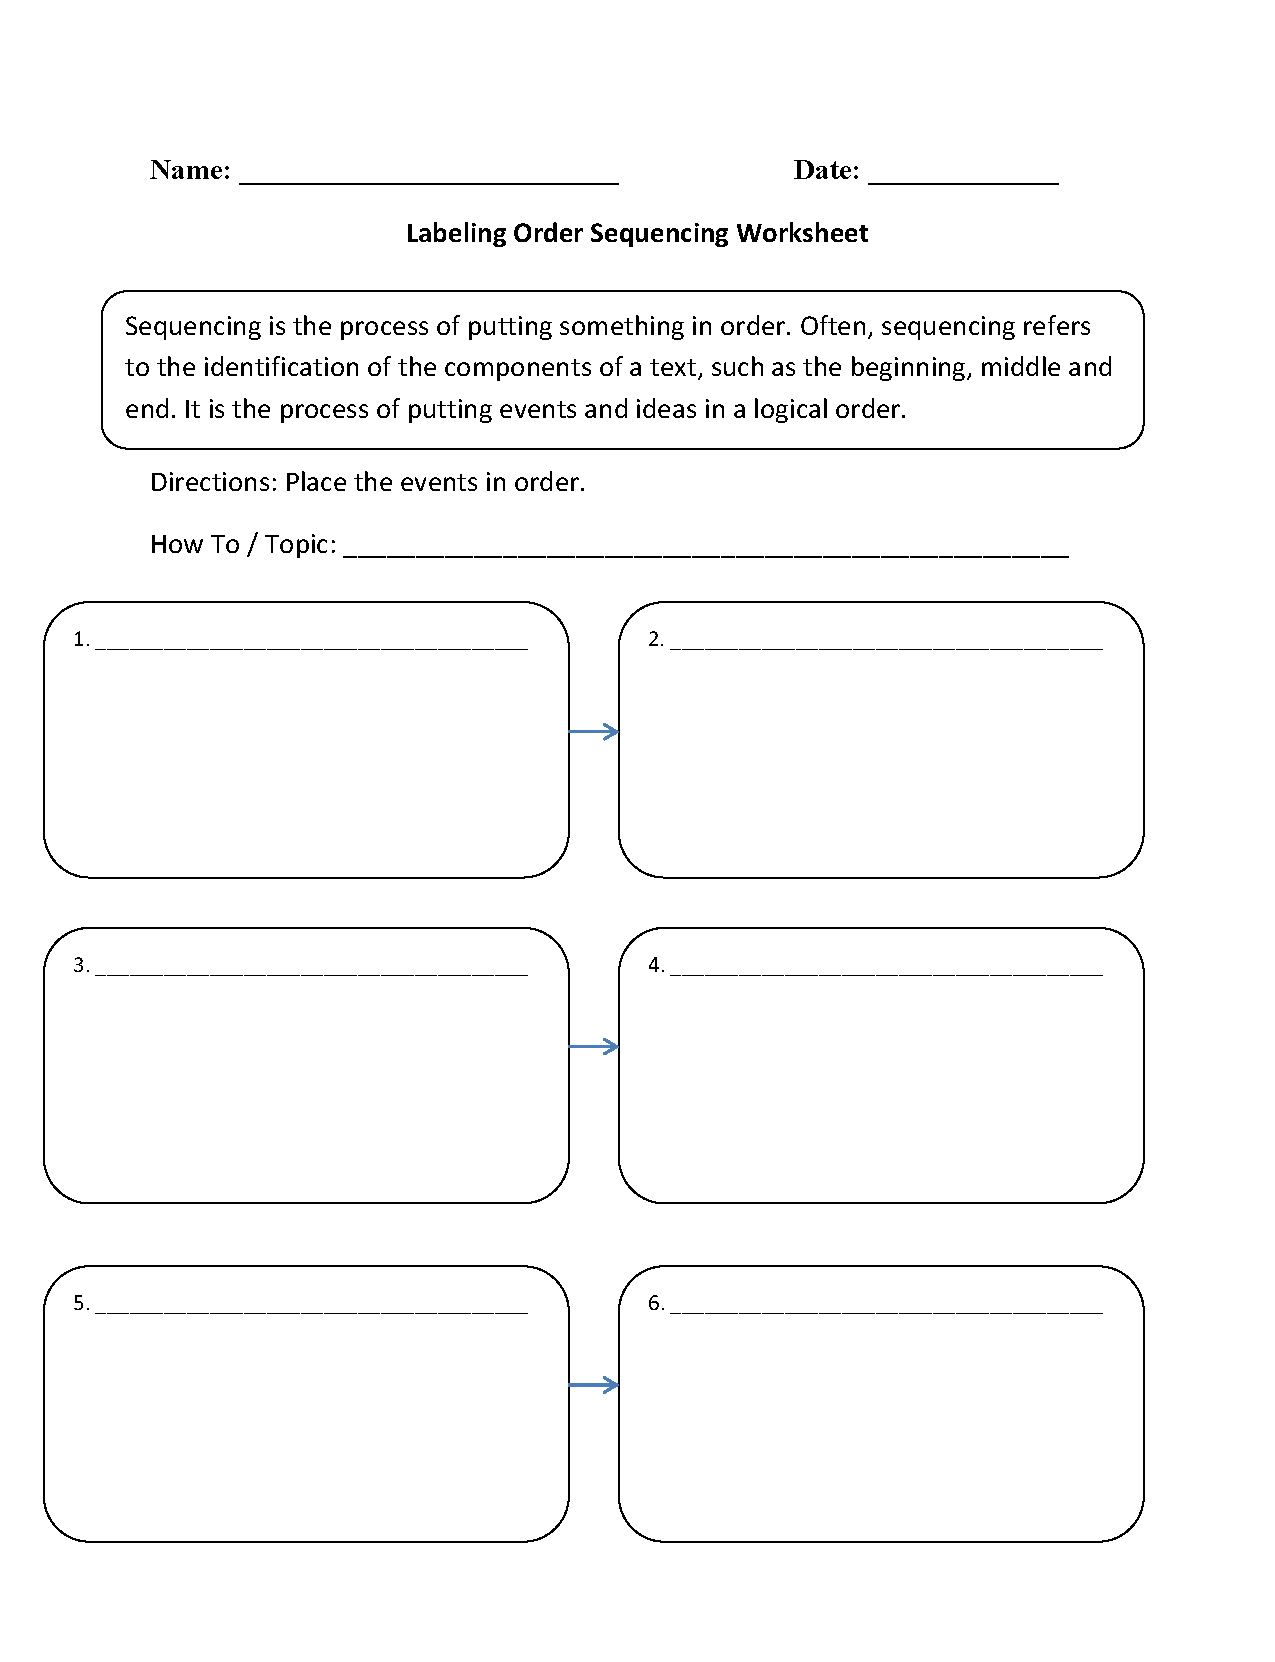 Worksheet On Sequencing Of Events For Grade 4